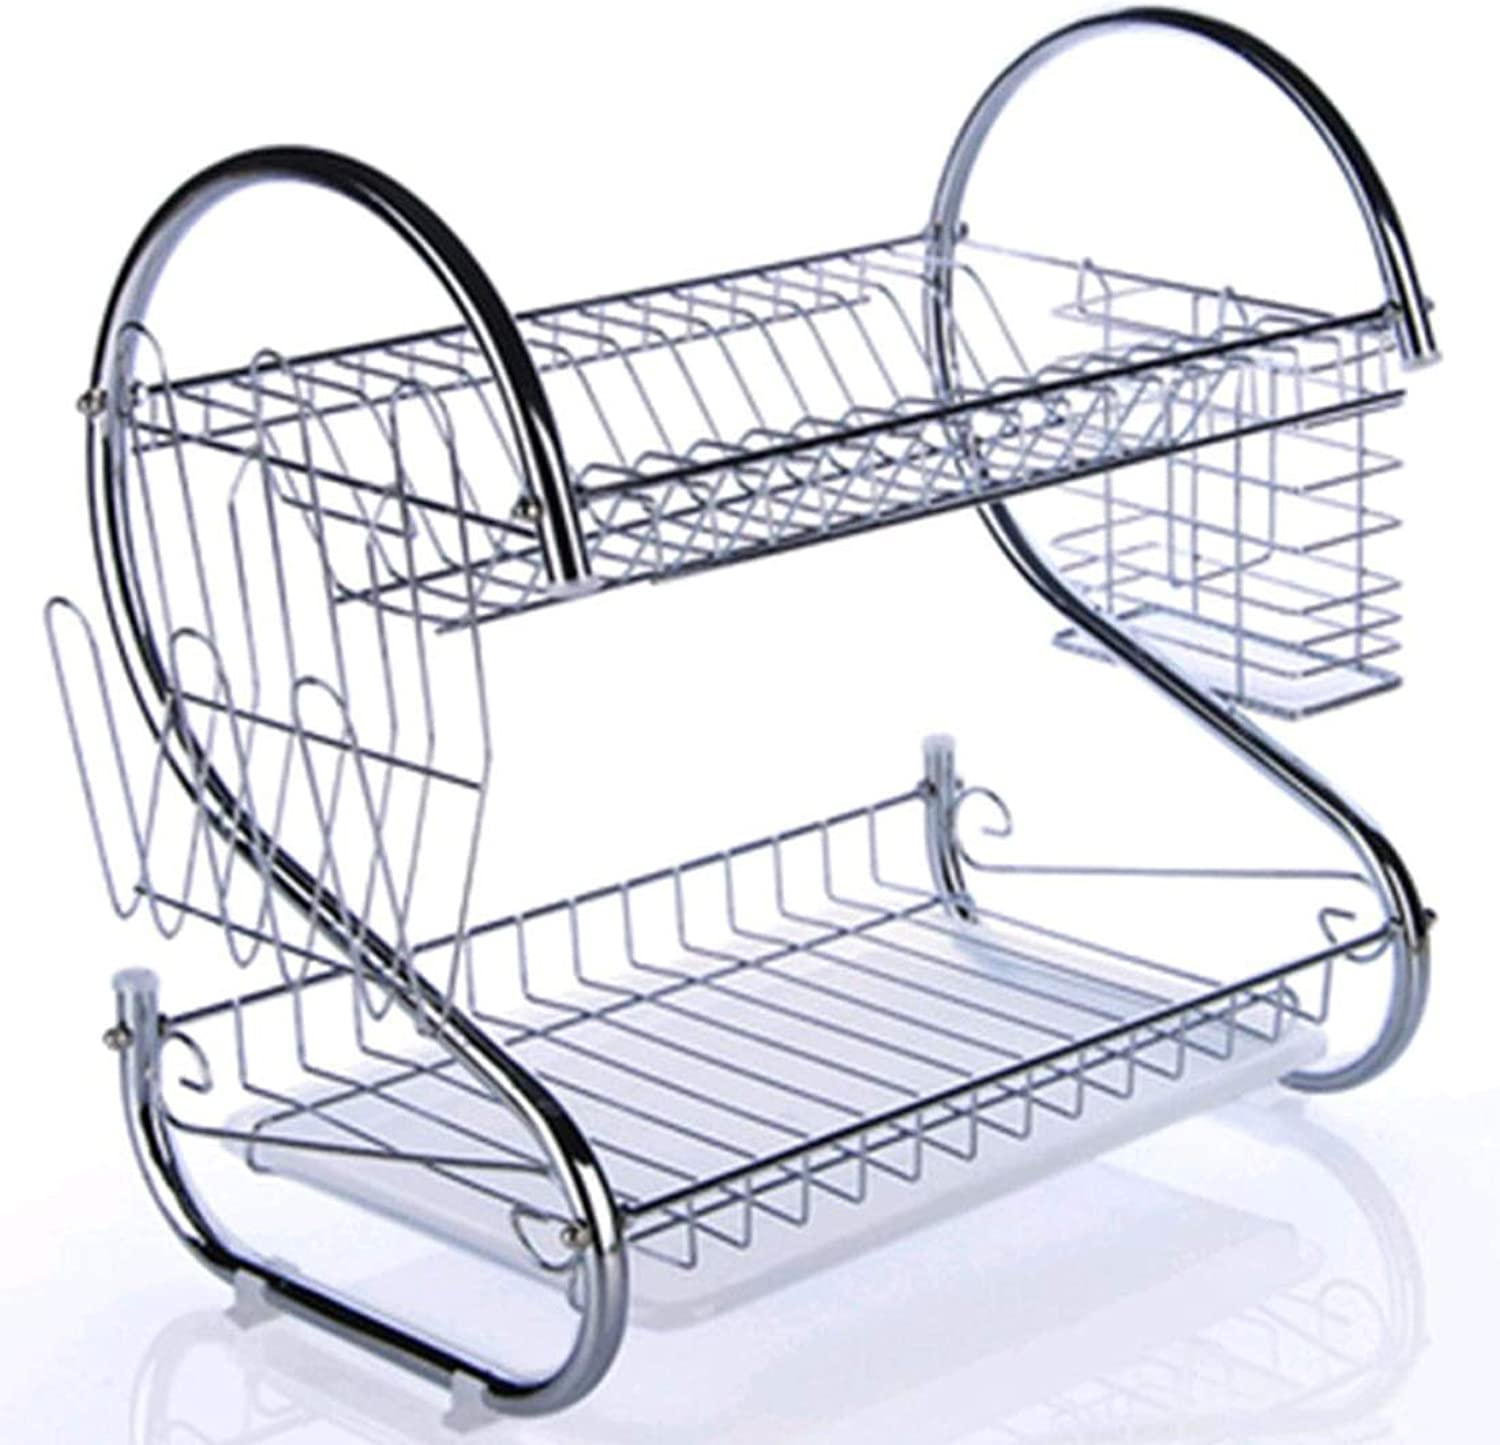 Stainless Steel Dish Rack Double Drain Dish Rack Kitchen Rack Storage and Drying Dishware Supplies Buy One Get One Free